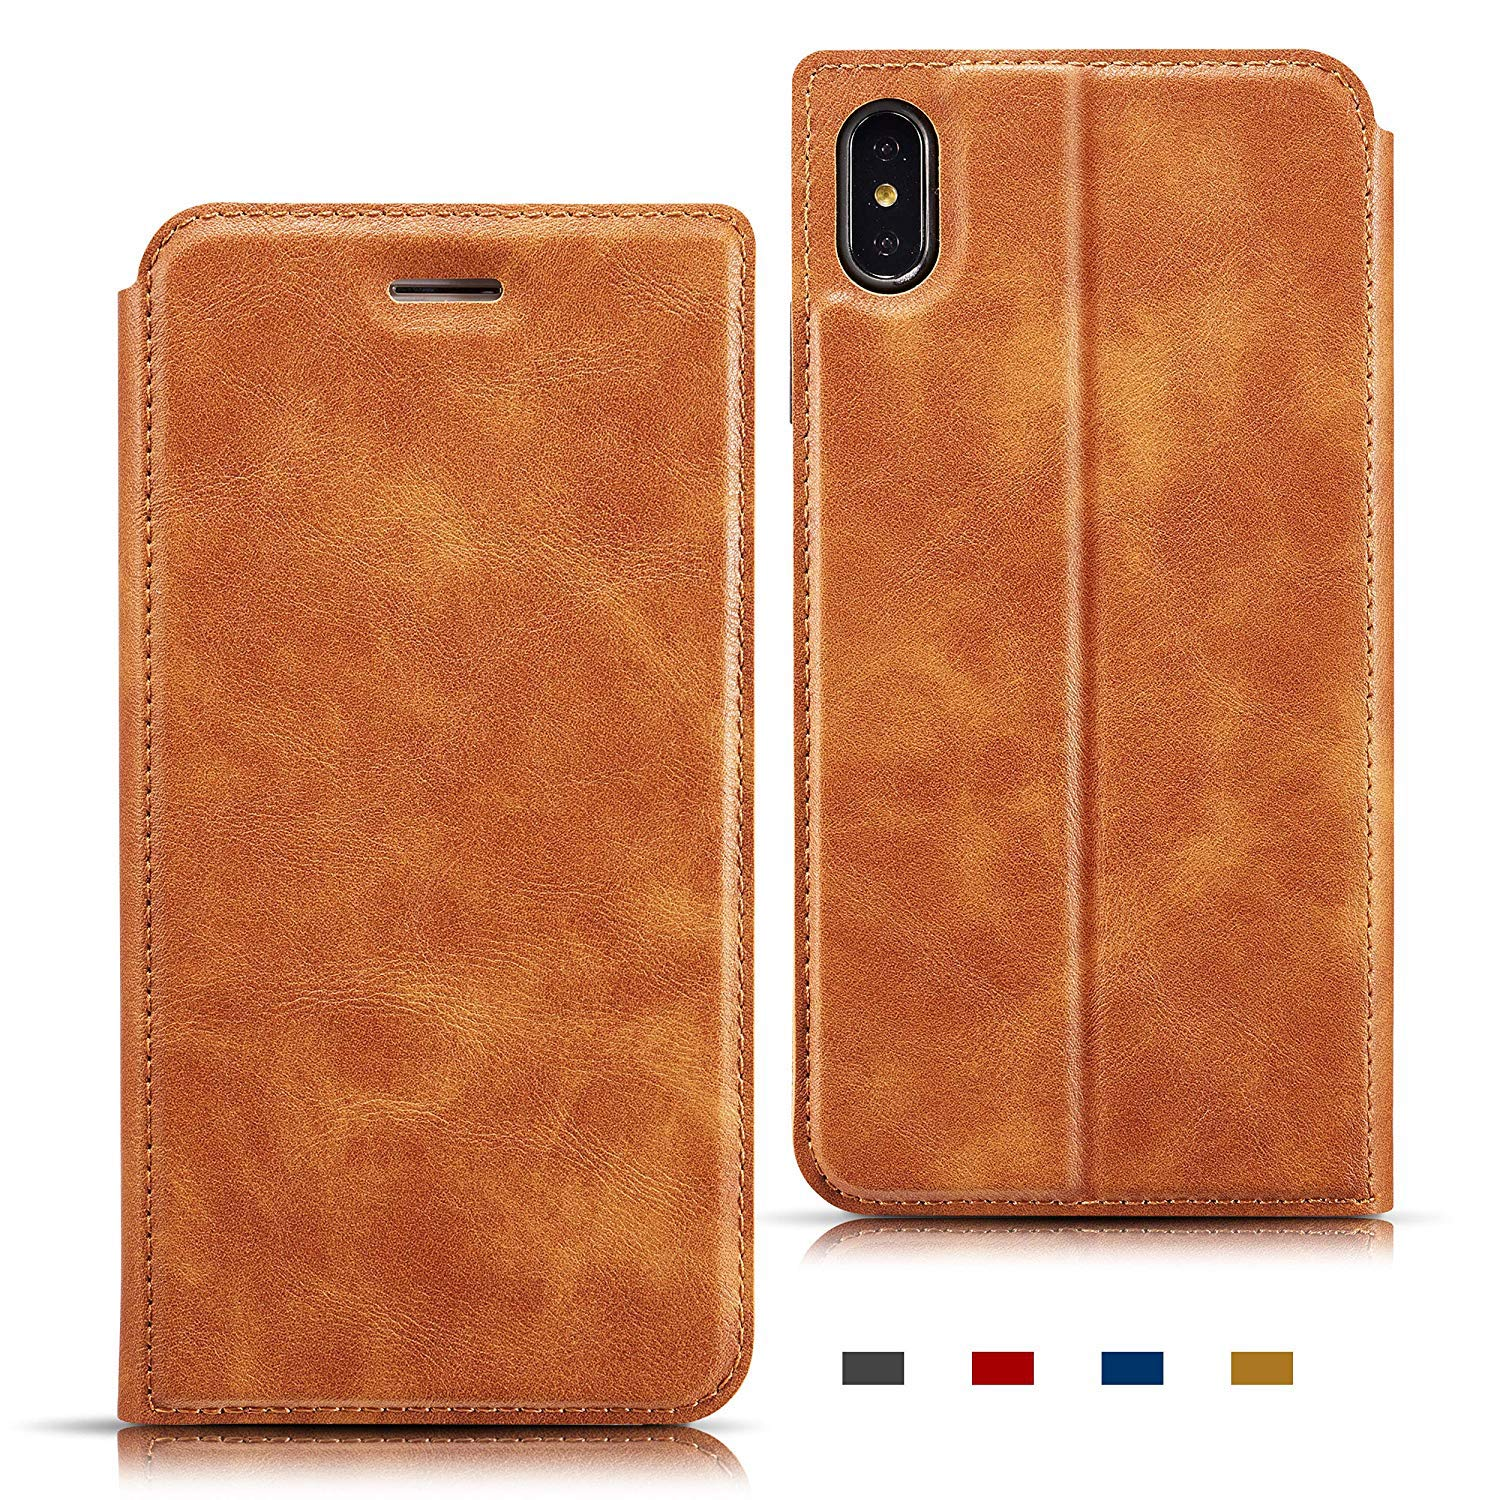 ZCDAYE Wallet Case for iPhone Xs Max,Premium PU Leather Vintage Style Magnetic Protective Case Folio Flip Cover with Kickstand, Lanyard & Credit Card Slots for iPhone Xs Max-Brown